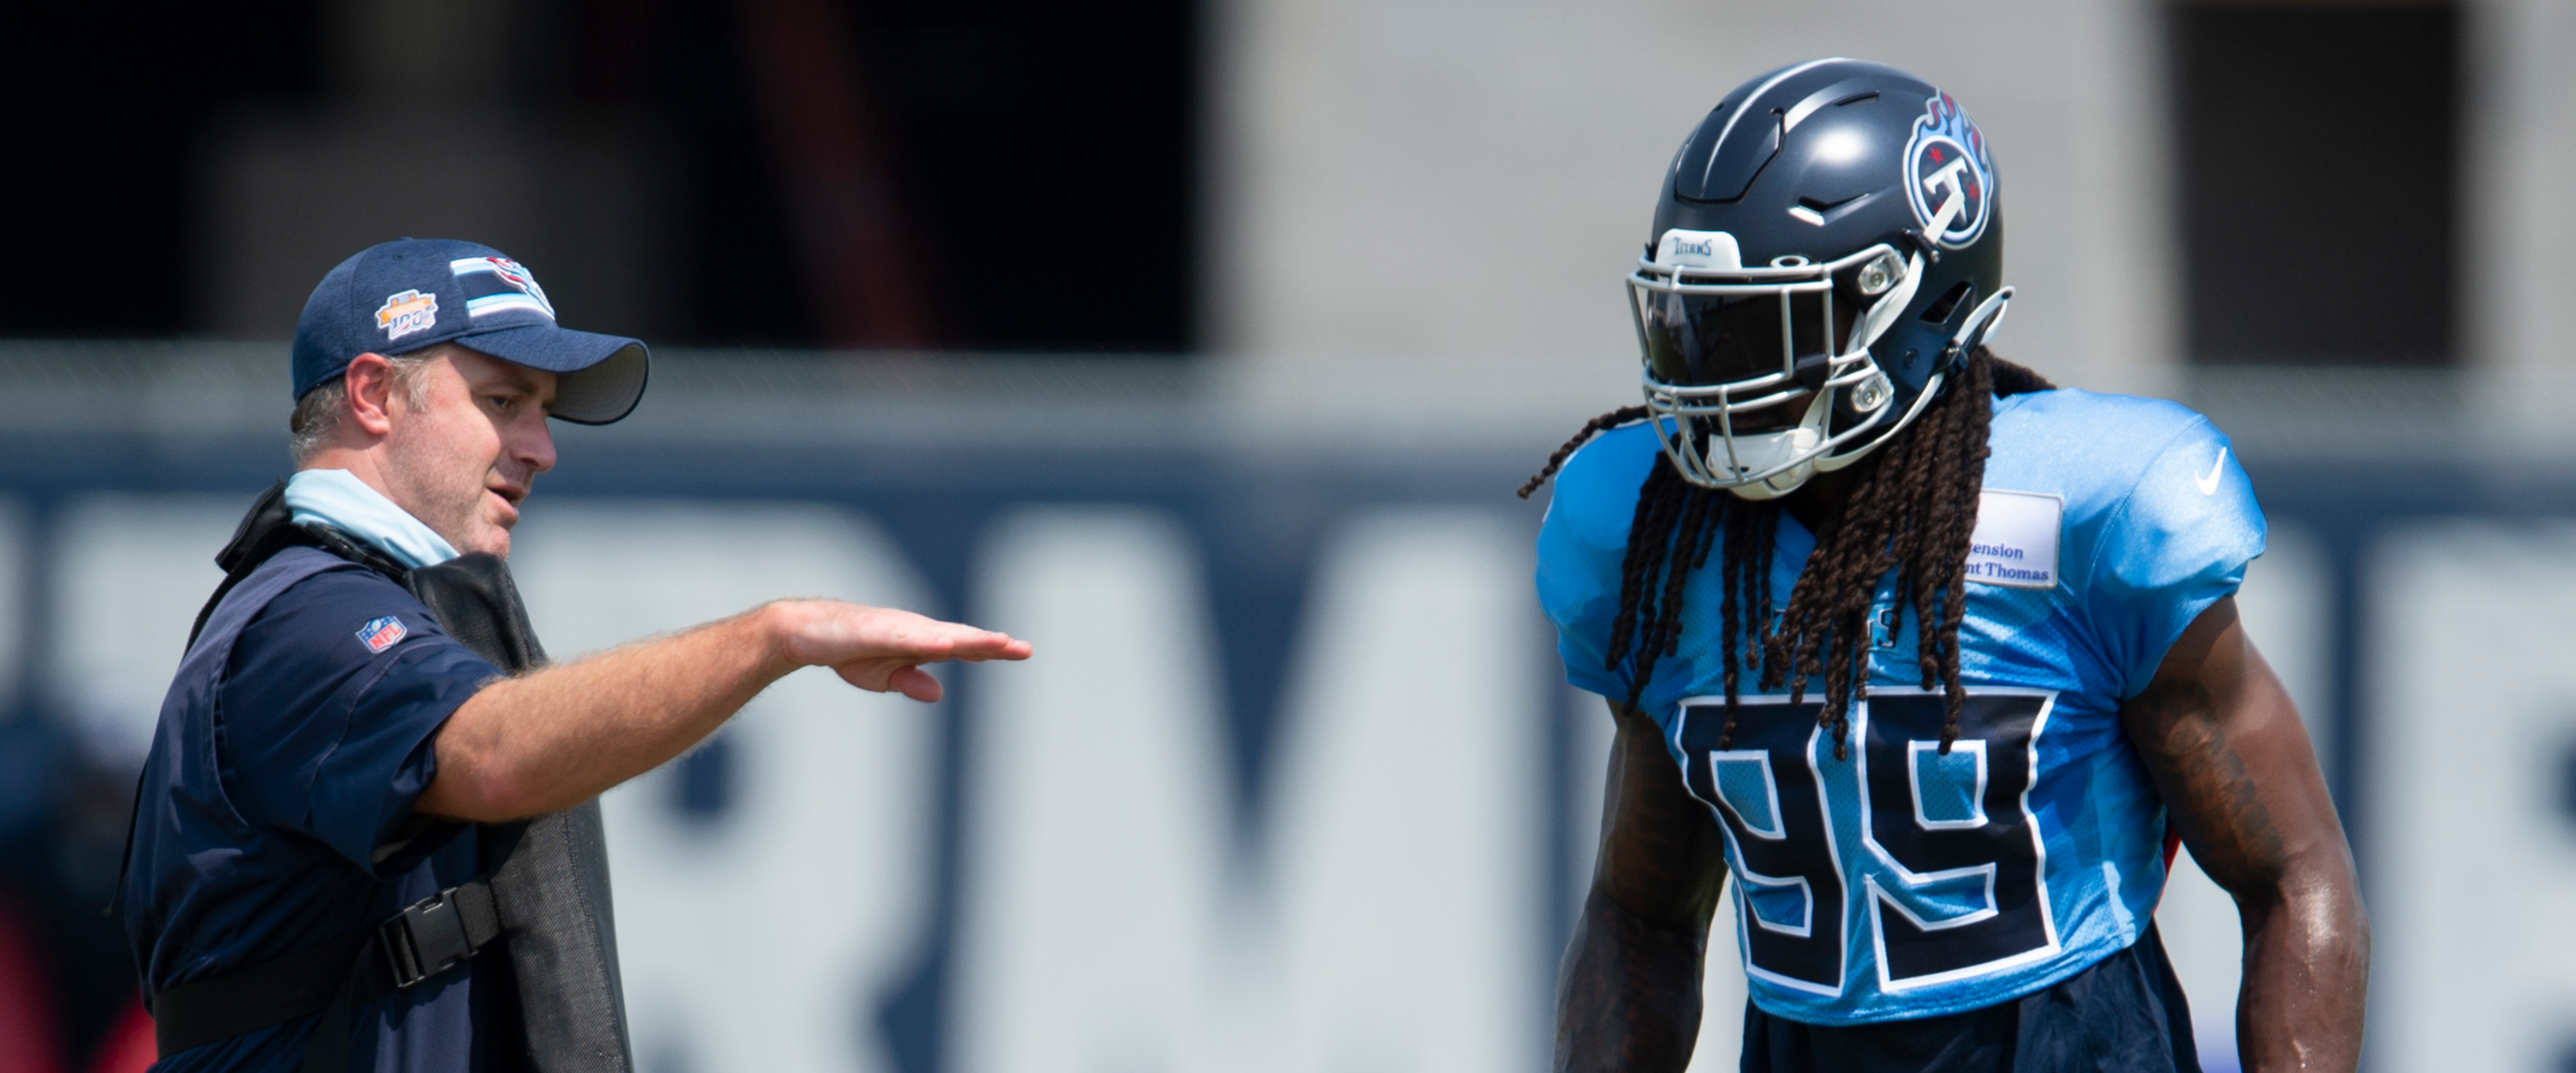 Former Titan Jadeveon Clowney signs with the Browns